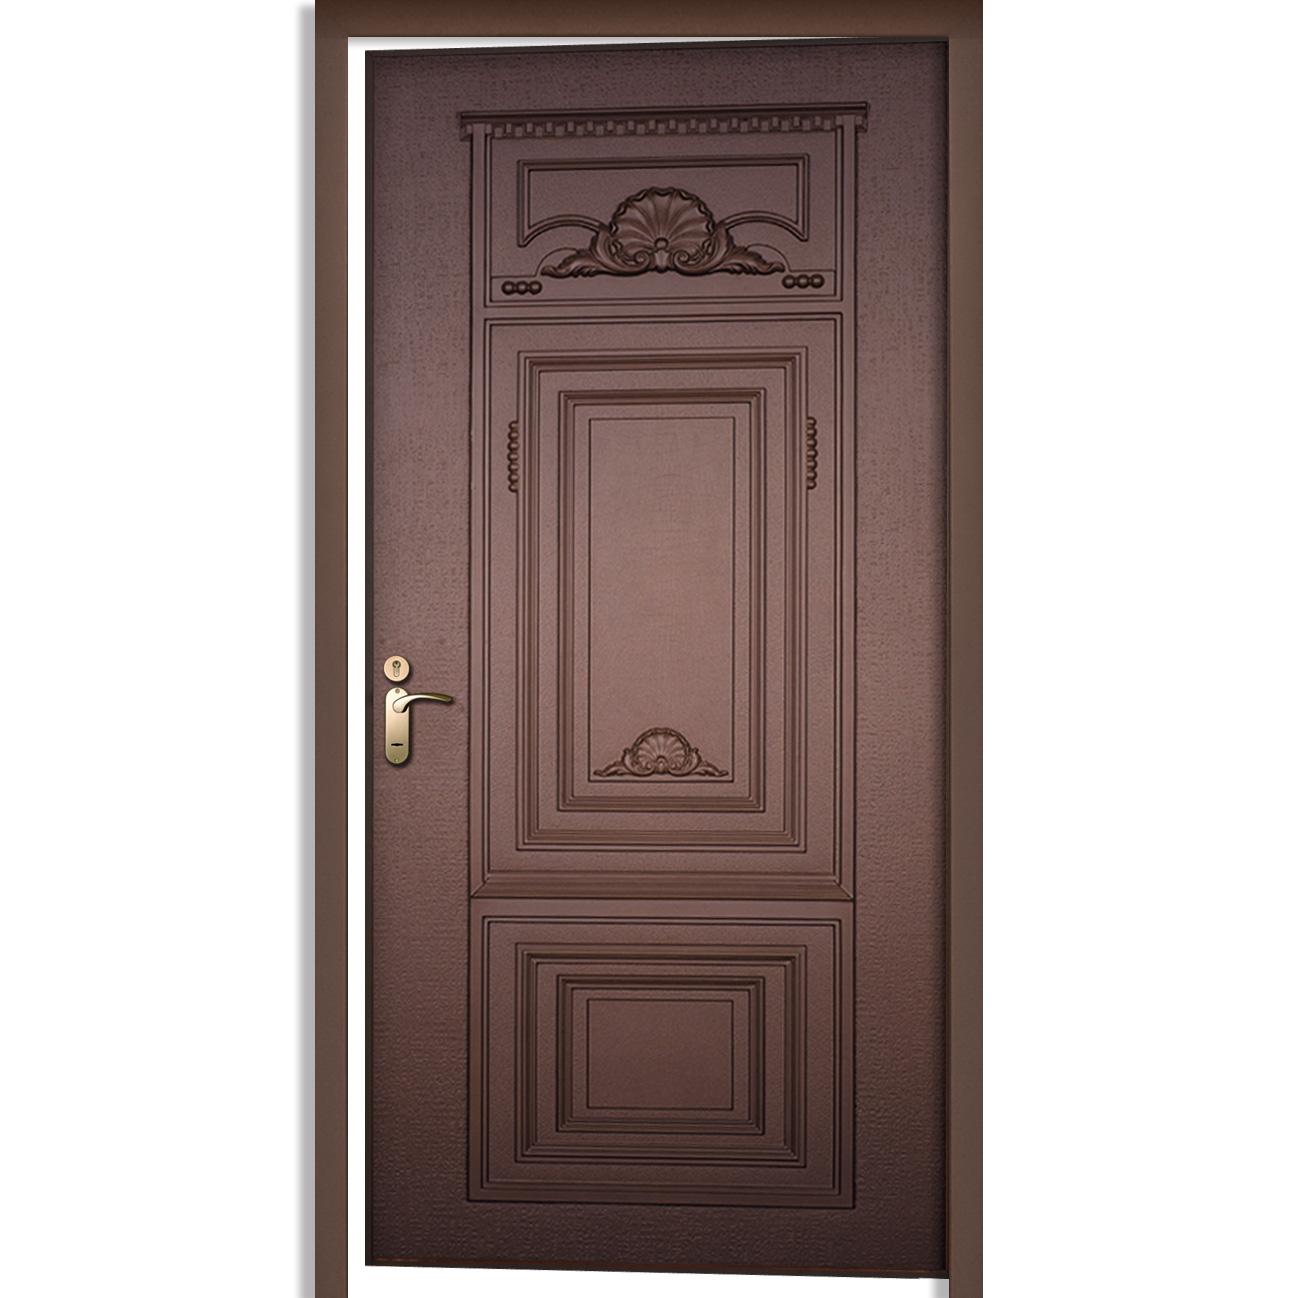 Image gallery single door for Wooden single door design for home